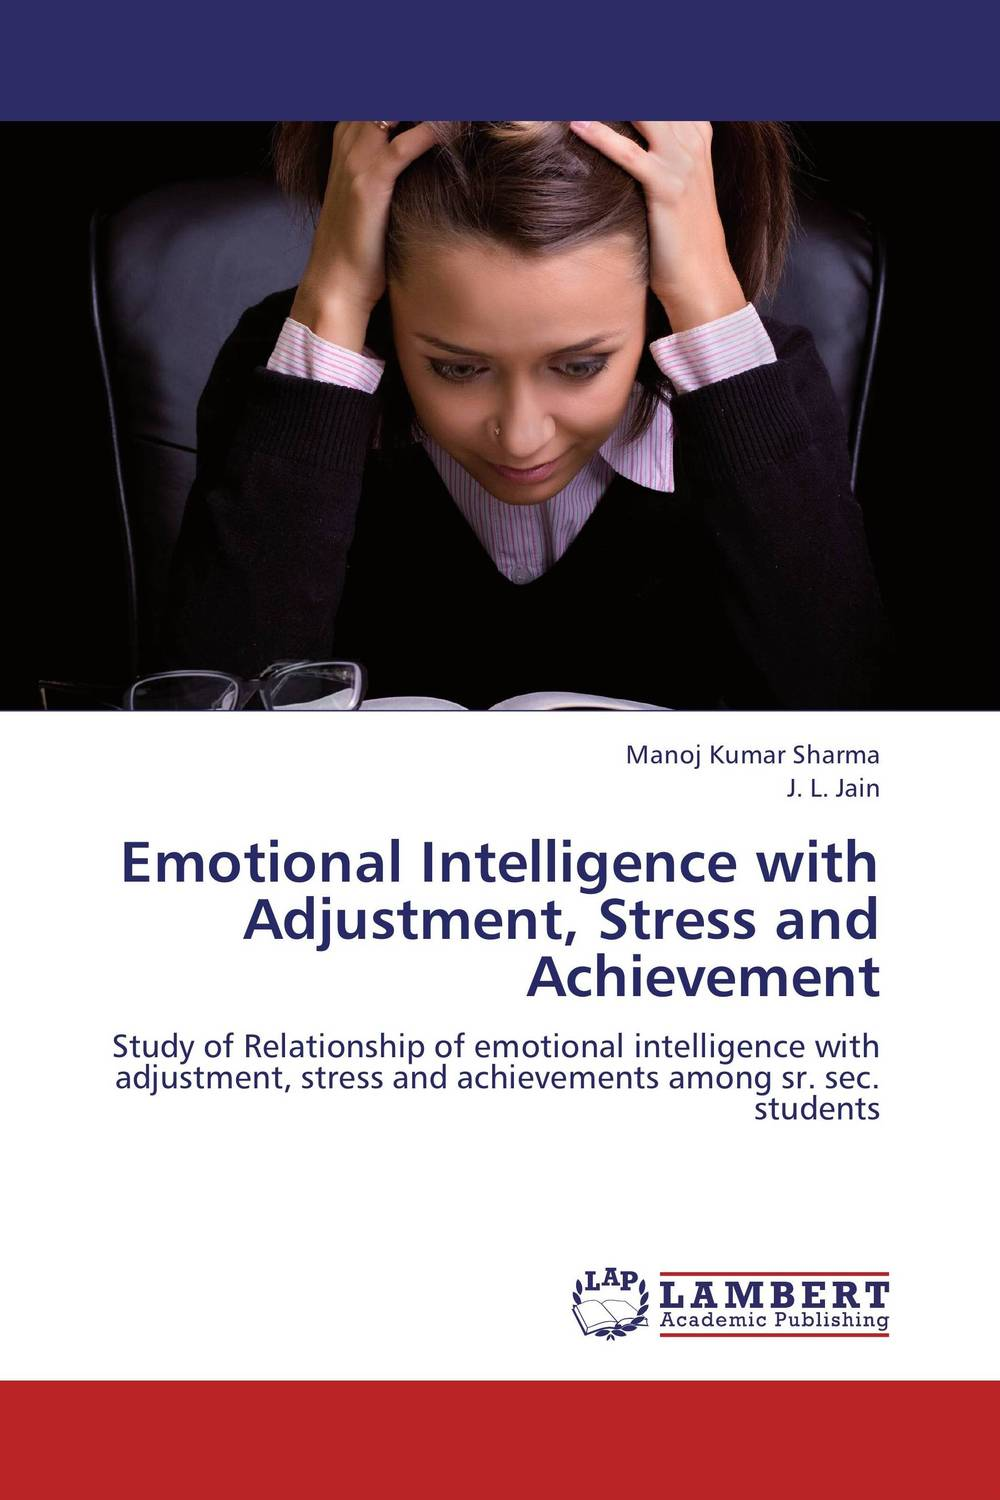 Emotional Intelligence with Adjustment, Stress and Achievement